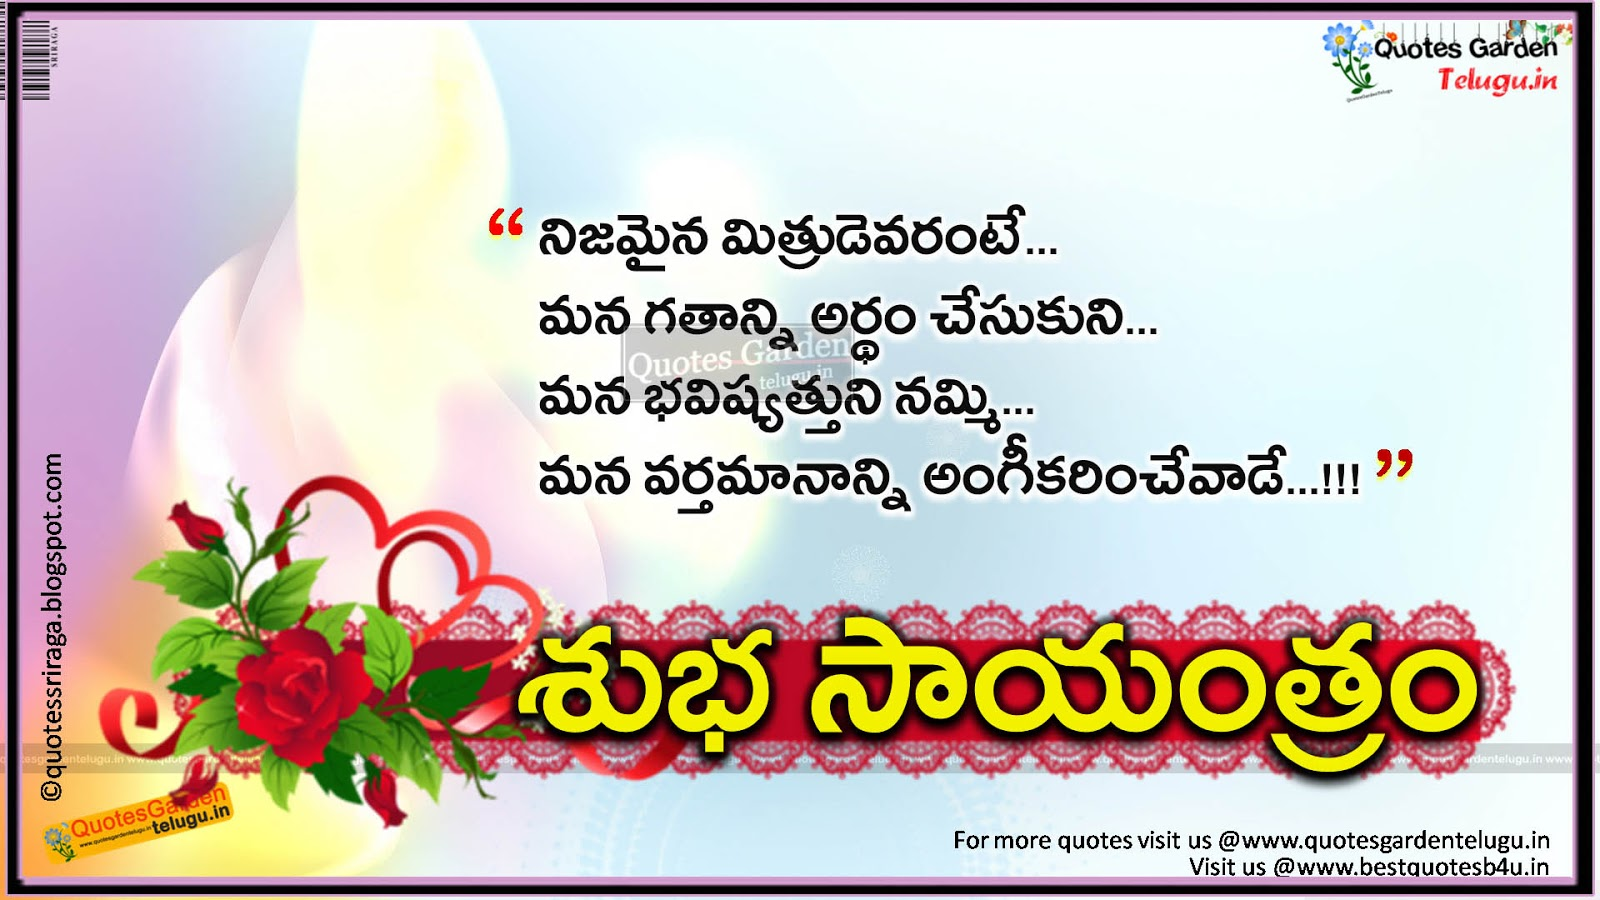 Best telugu good evening quotes sms | QUOTES GARDEN TELUGU | Telugu ...